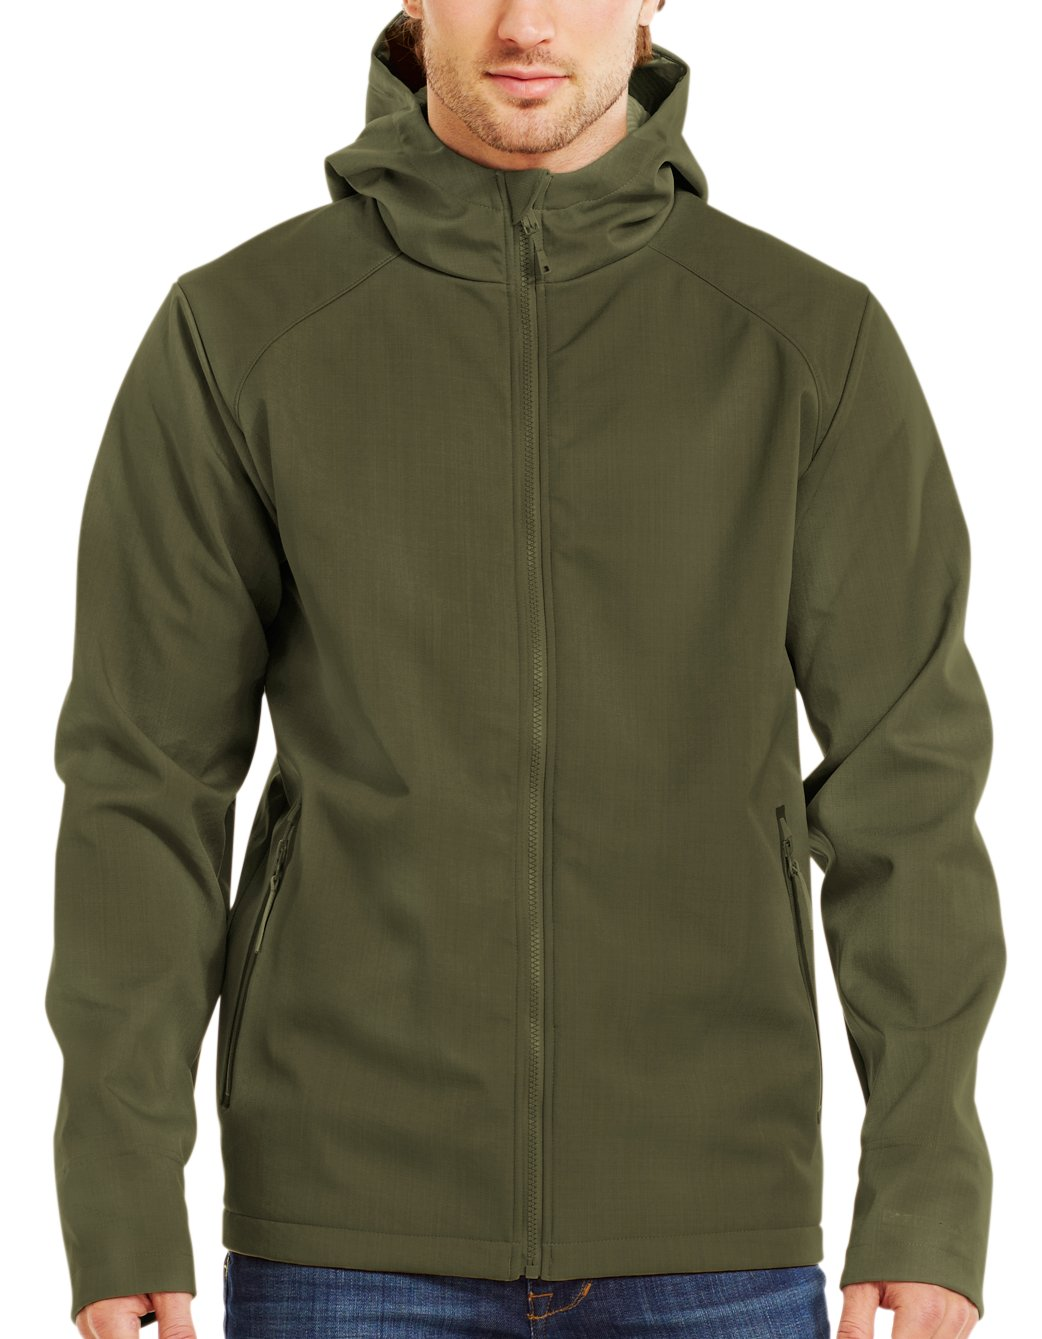 Men's ColdGear® Infrared Receptor Softshell, GREENHEAD, Front